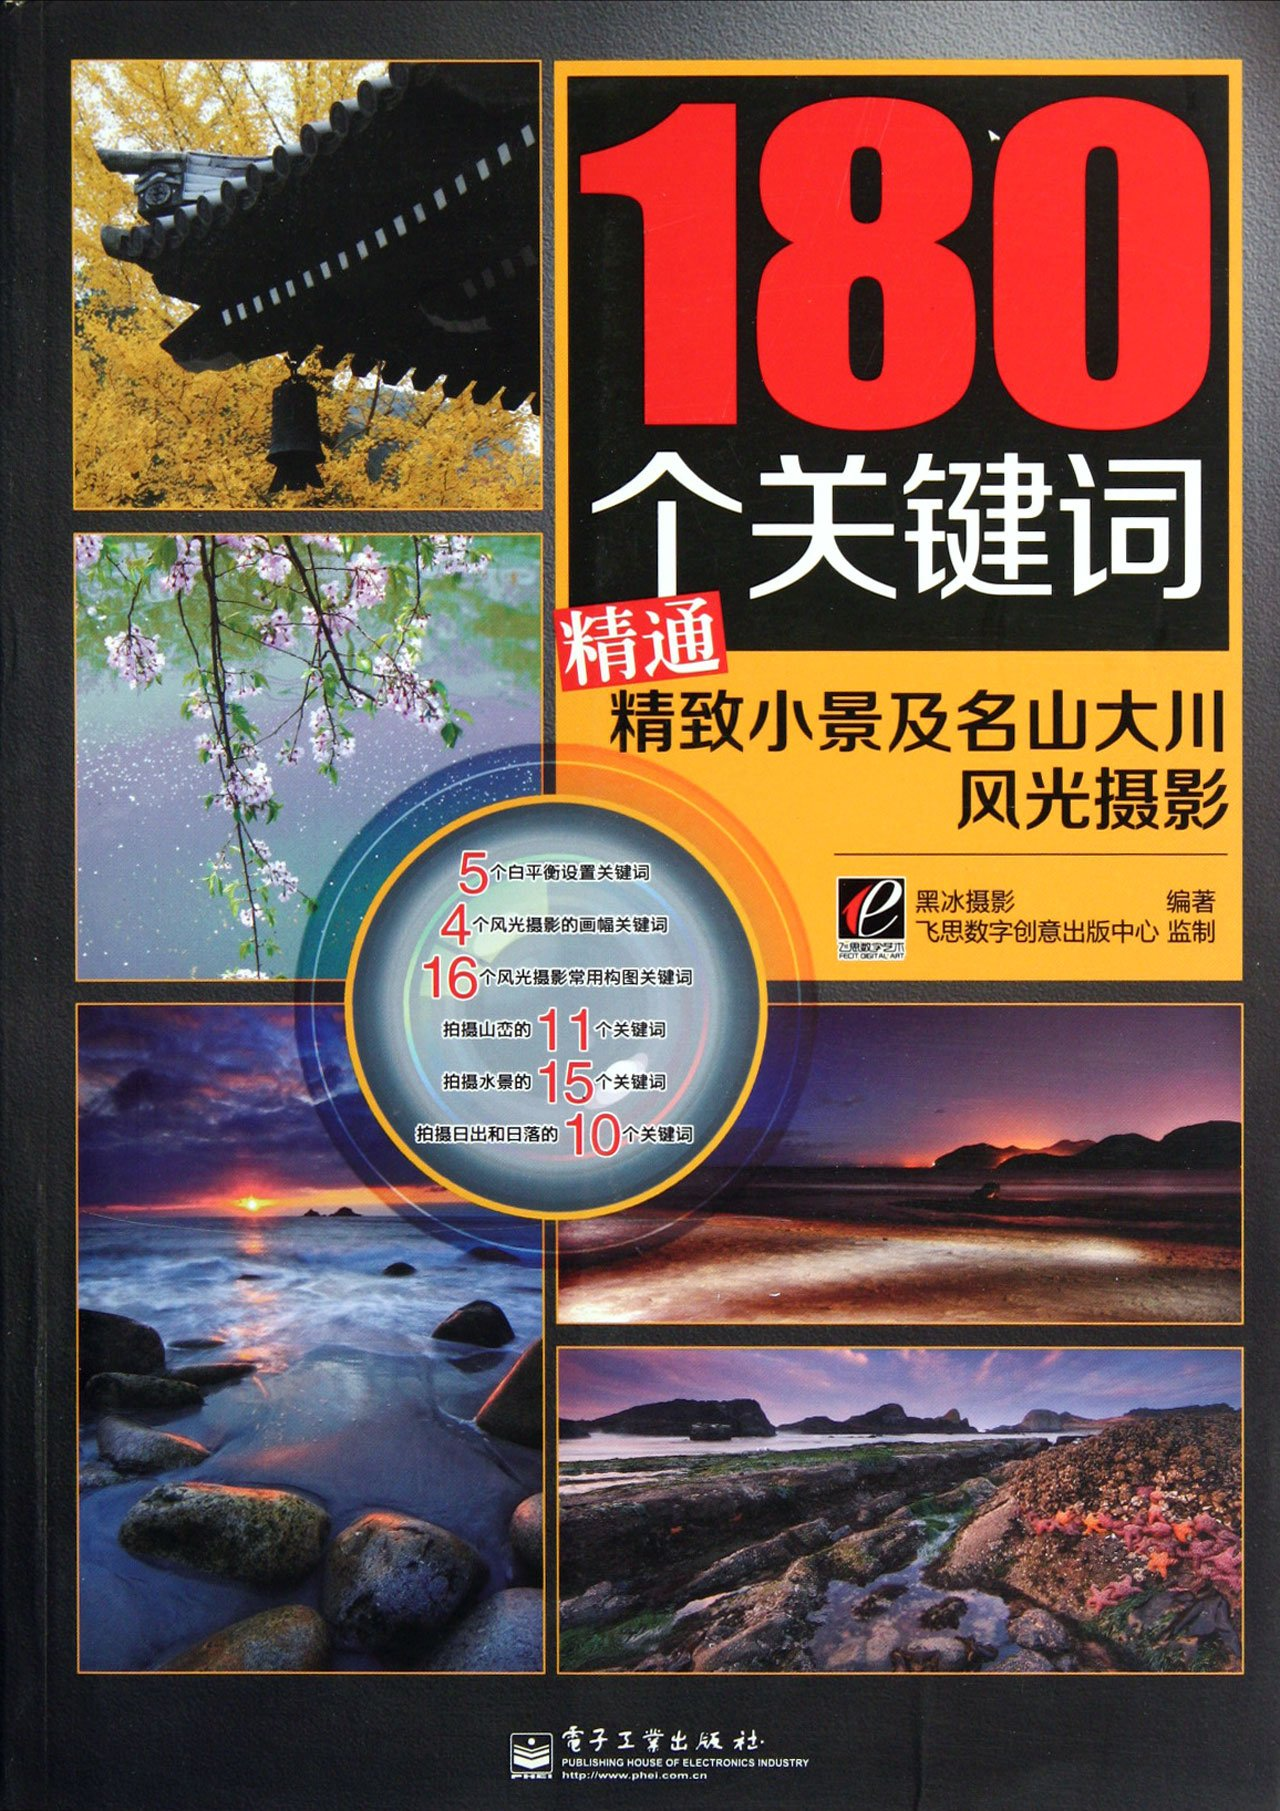 Download Key Words of Exquisite Sceneries and Landscape Photography (Chinese Edition) pdf epub